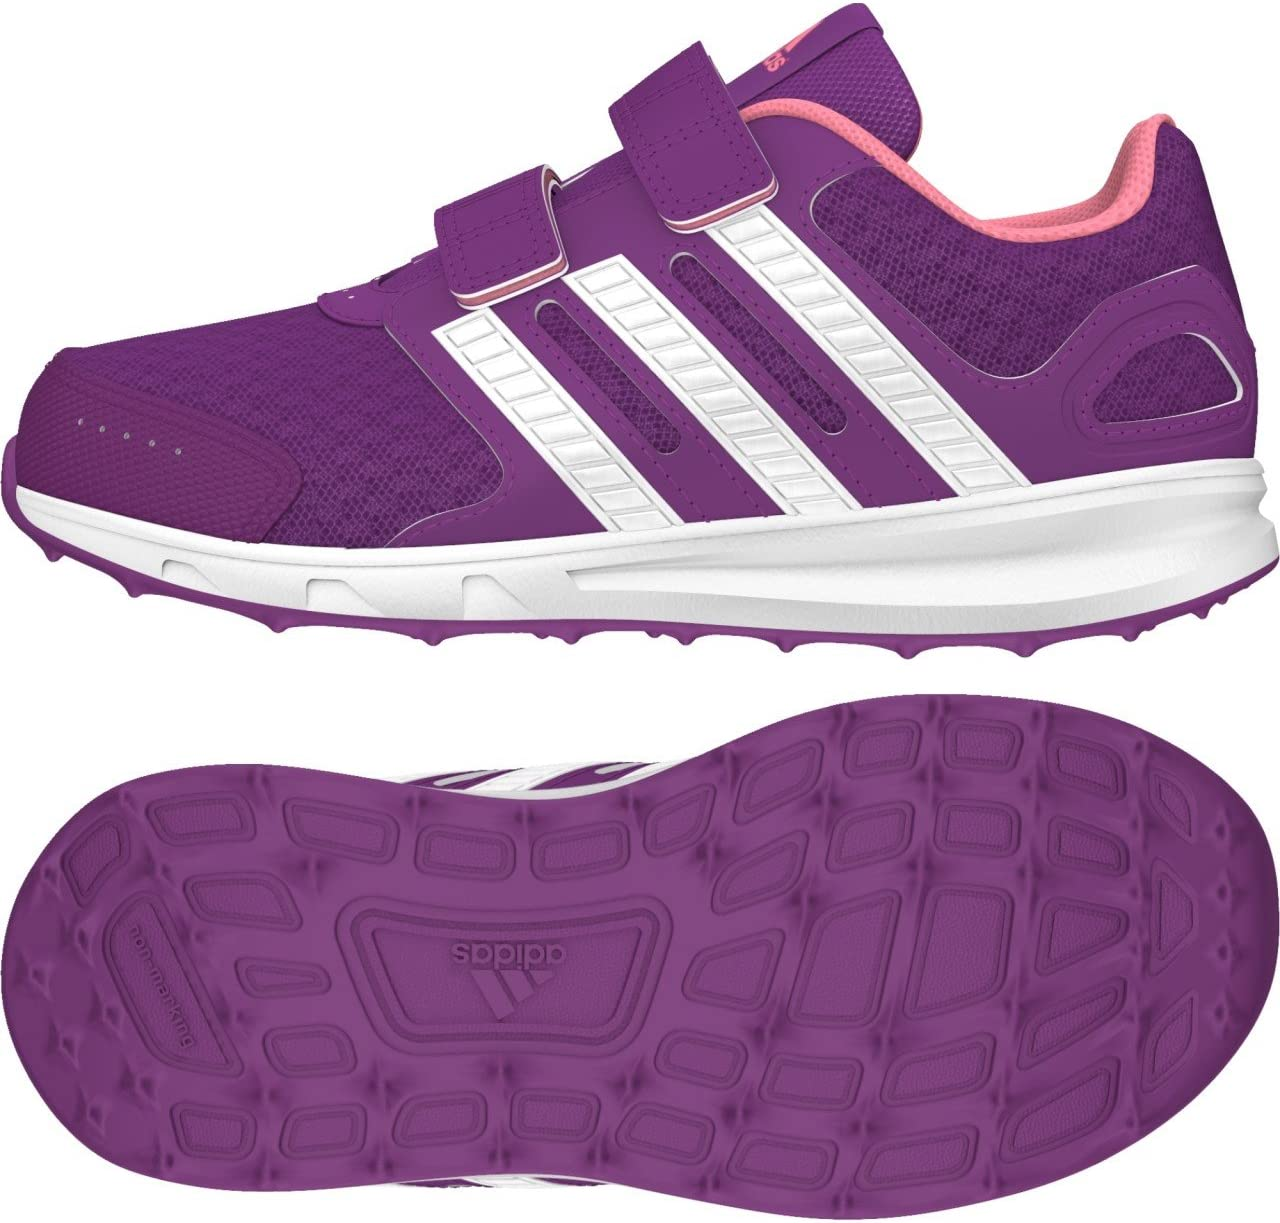 adidas Intersport 2 CF K – shopur/ftwwht/sepigl, 33: Amazon.es ...